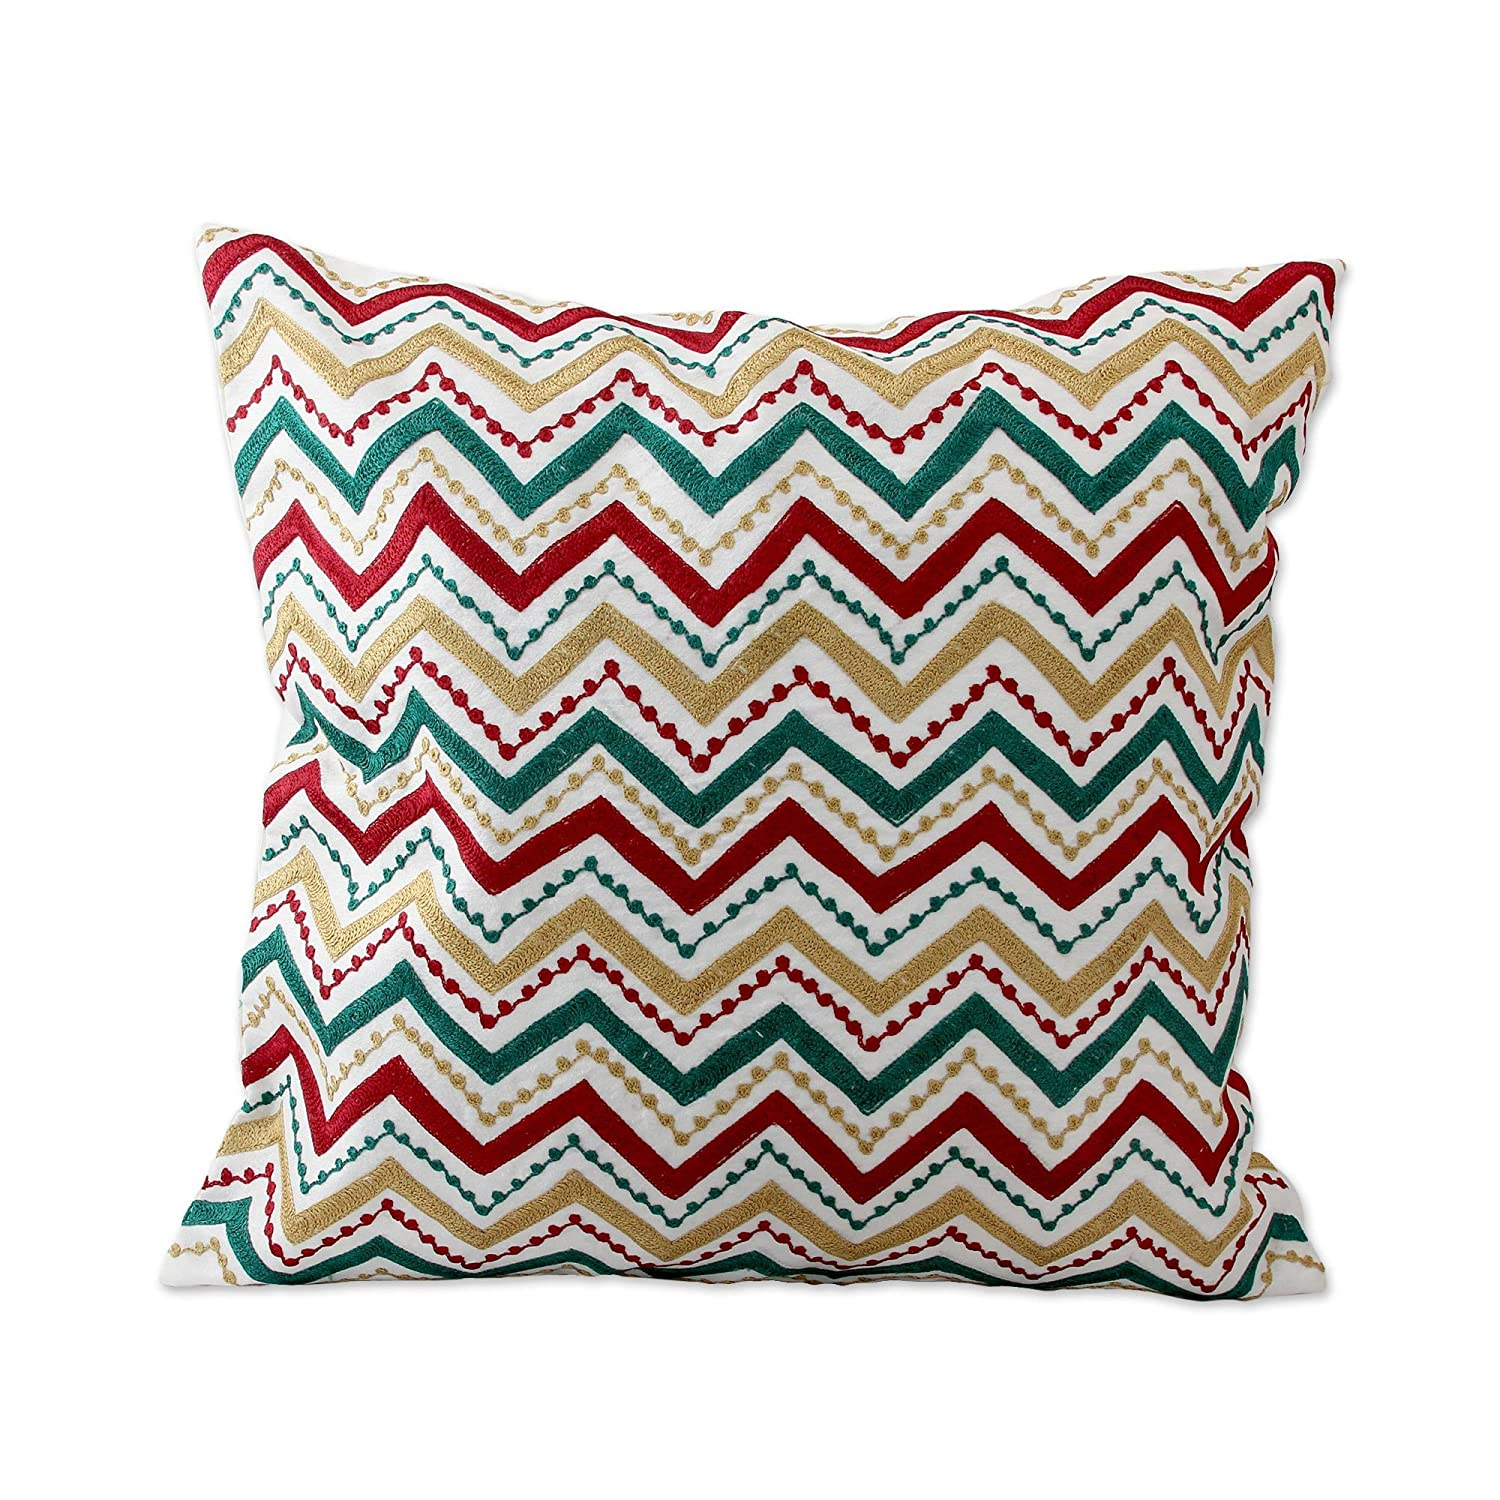 Pair Embroidered Cotton Cushion Covers NOVICA PT061 Jaipur Meadow